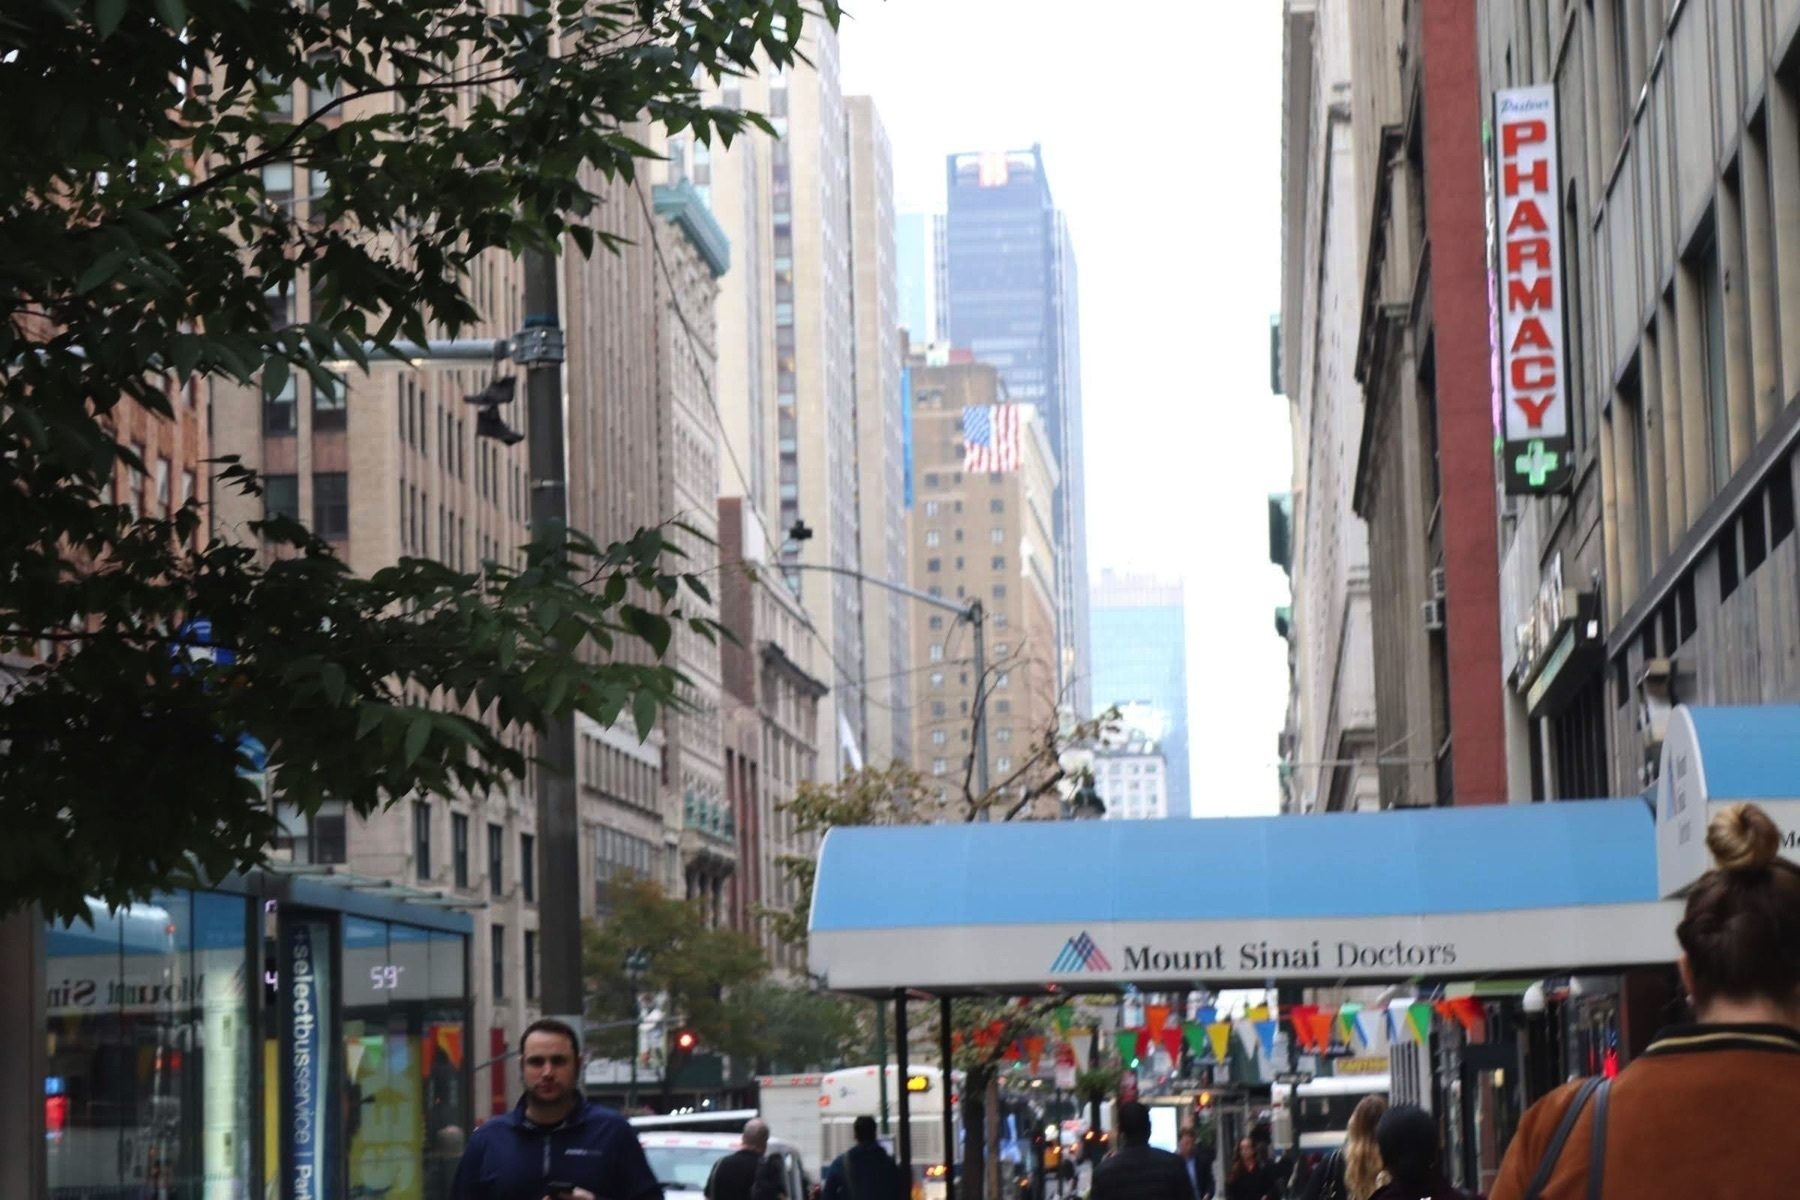 street photo from New York City including a hospital entry